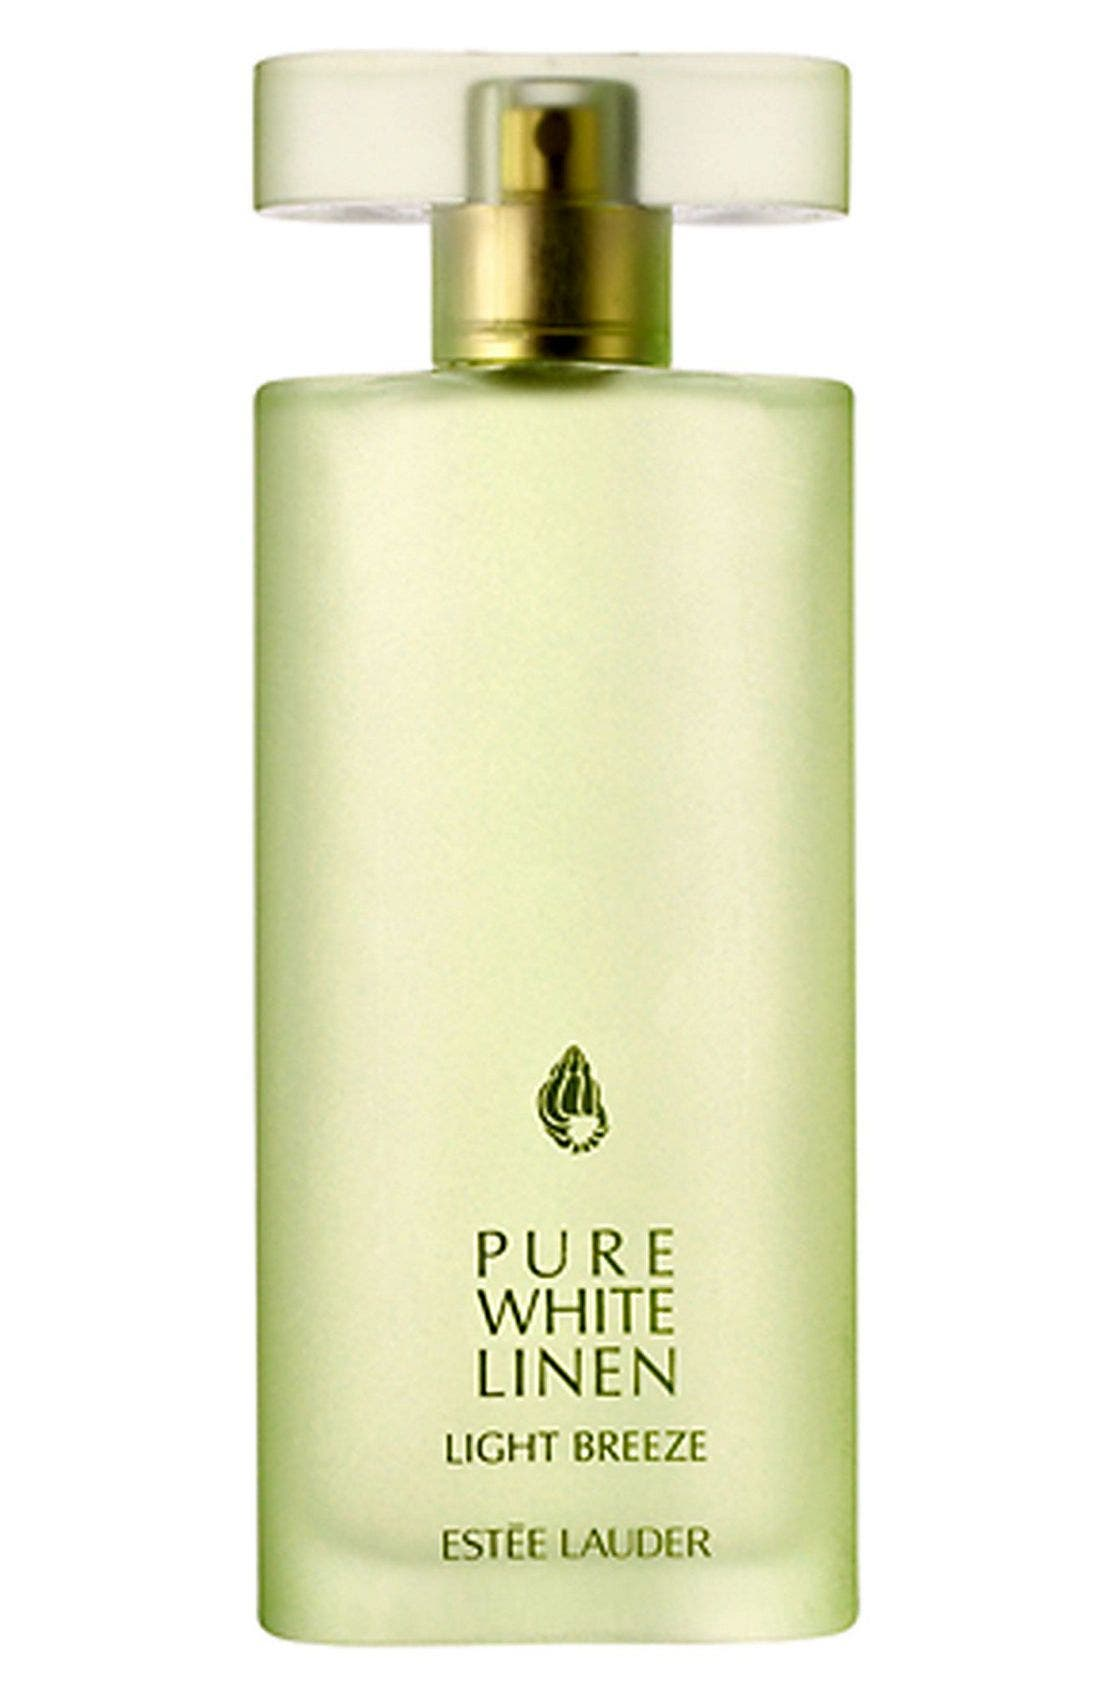 ESTÉE LAUDER Pure White Linen - Light Breeze Eau de Parfum Spray, Main, color, NO COLOR